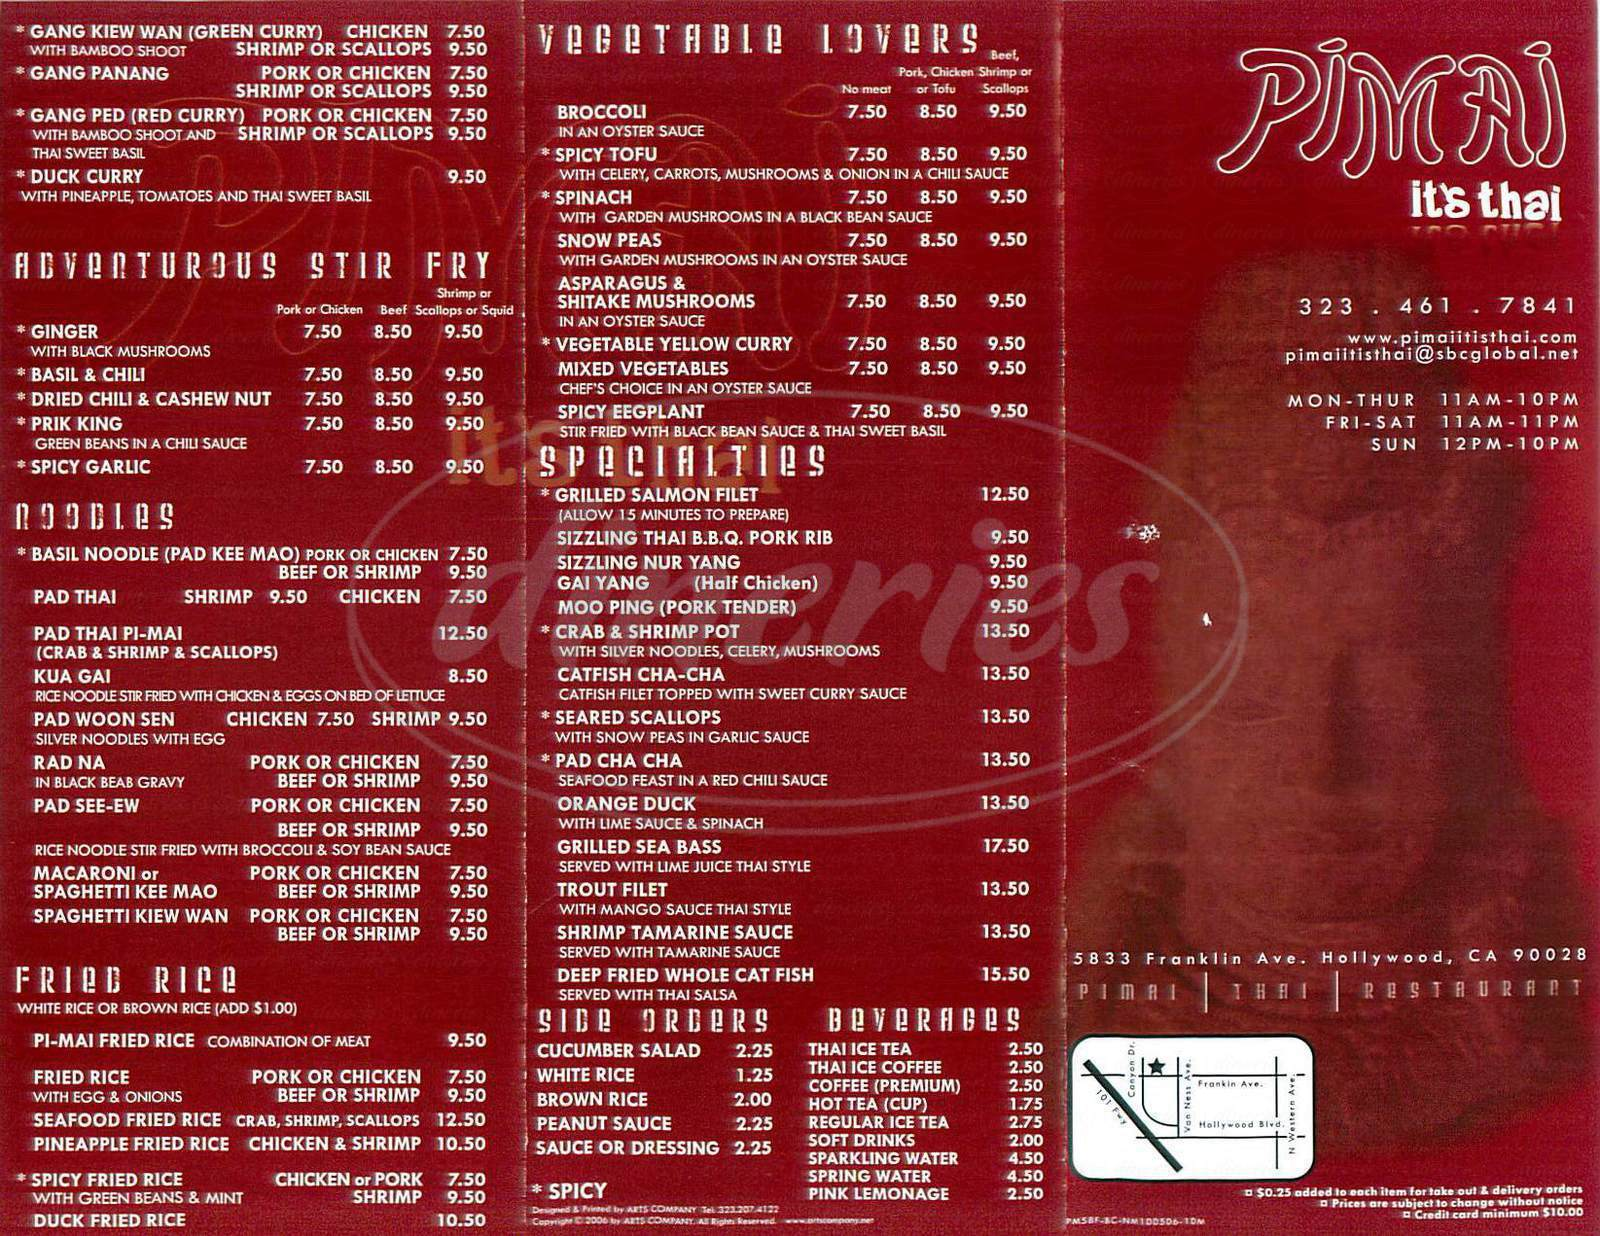 menu for Pimai Restaurant